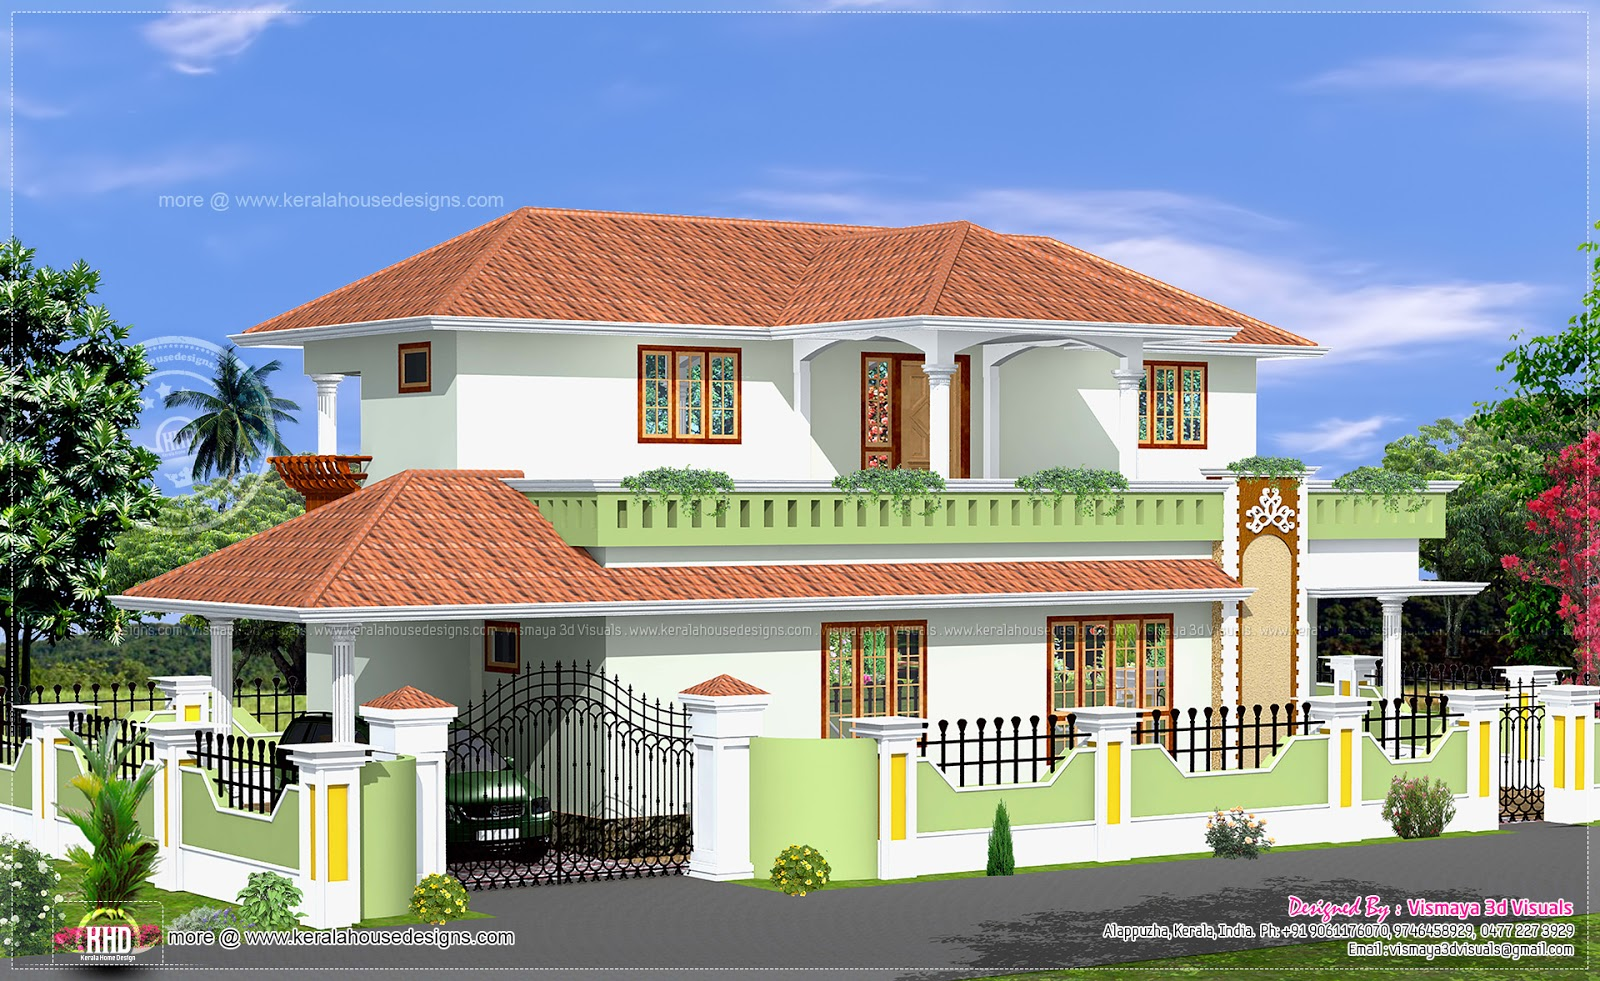 Simple house designs kerala style home design and style Easy home design ideas